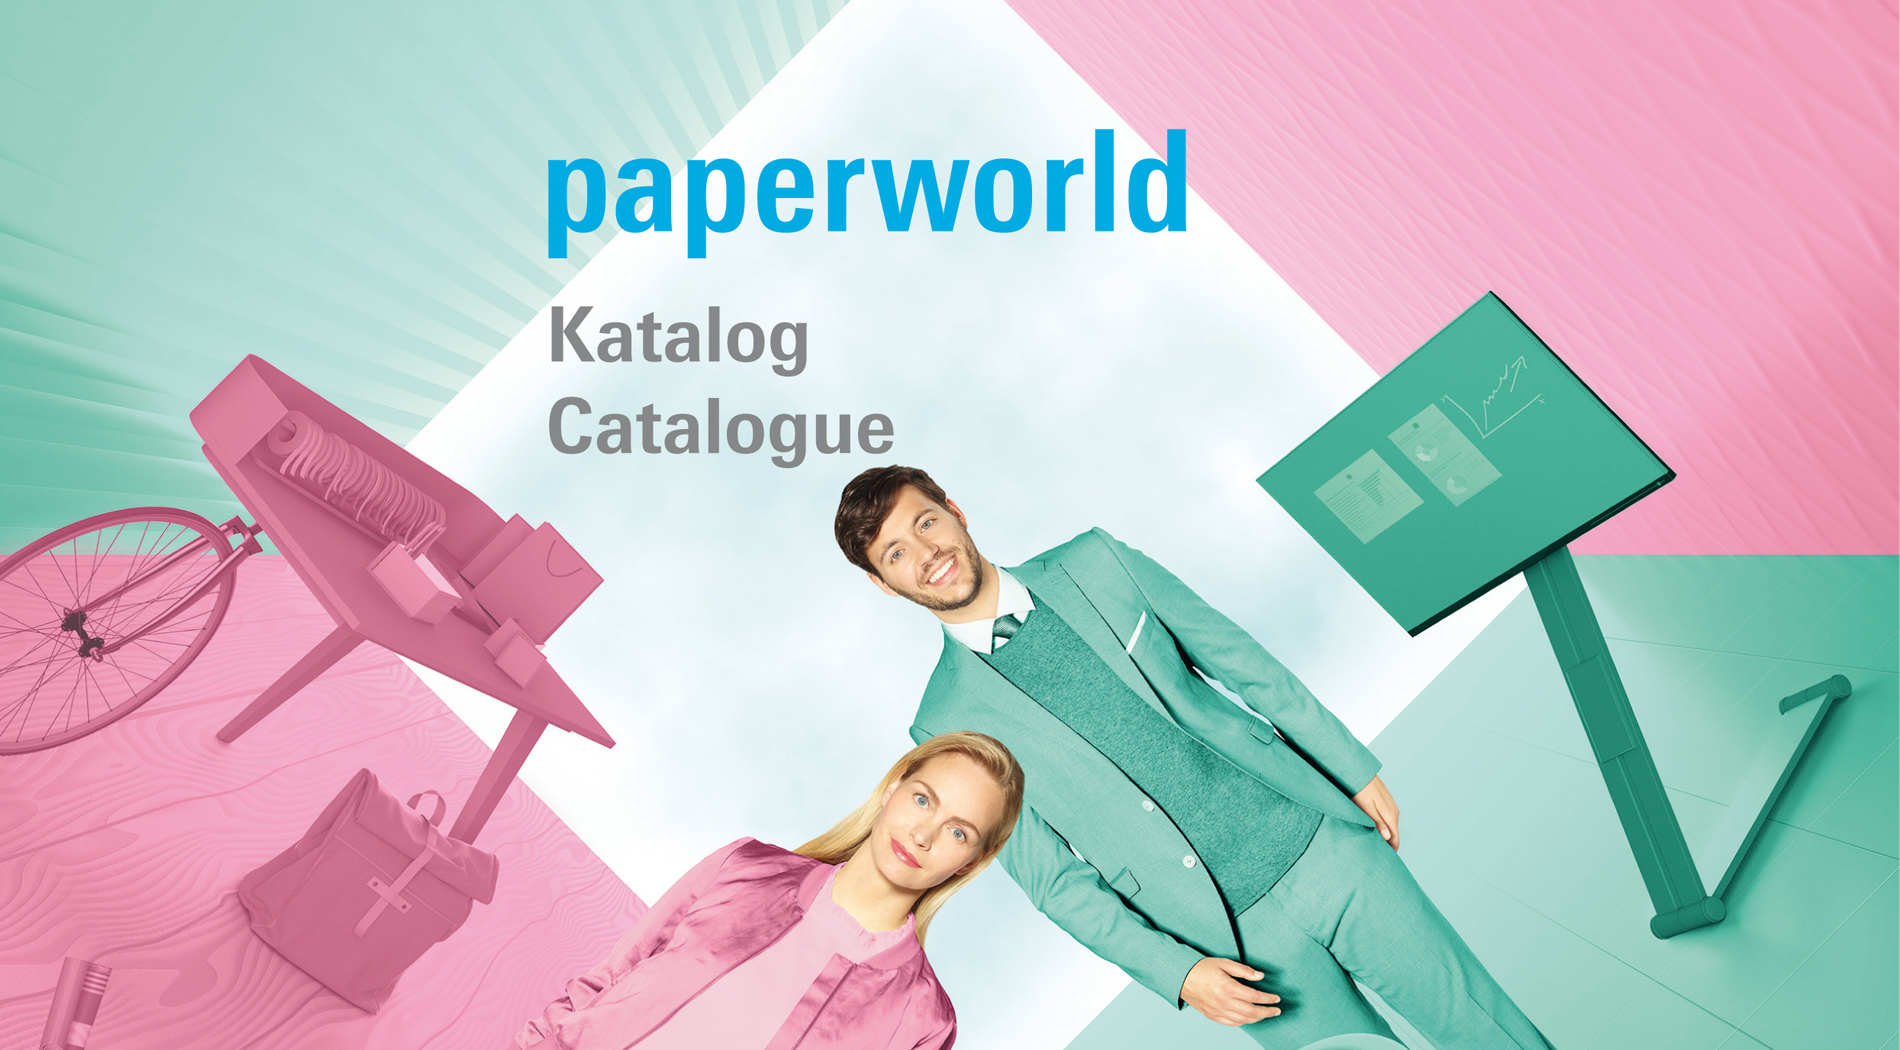 Paperworld Catalogue